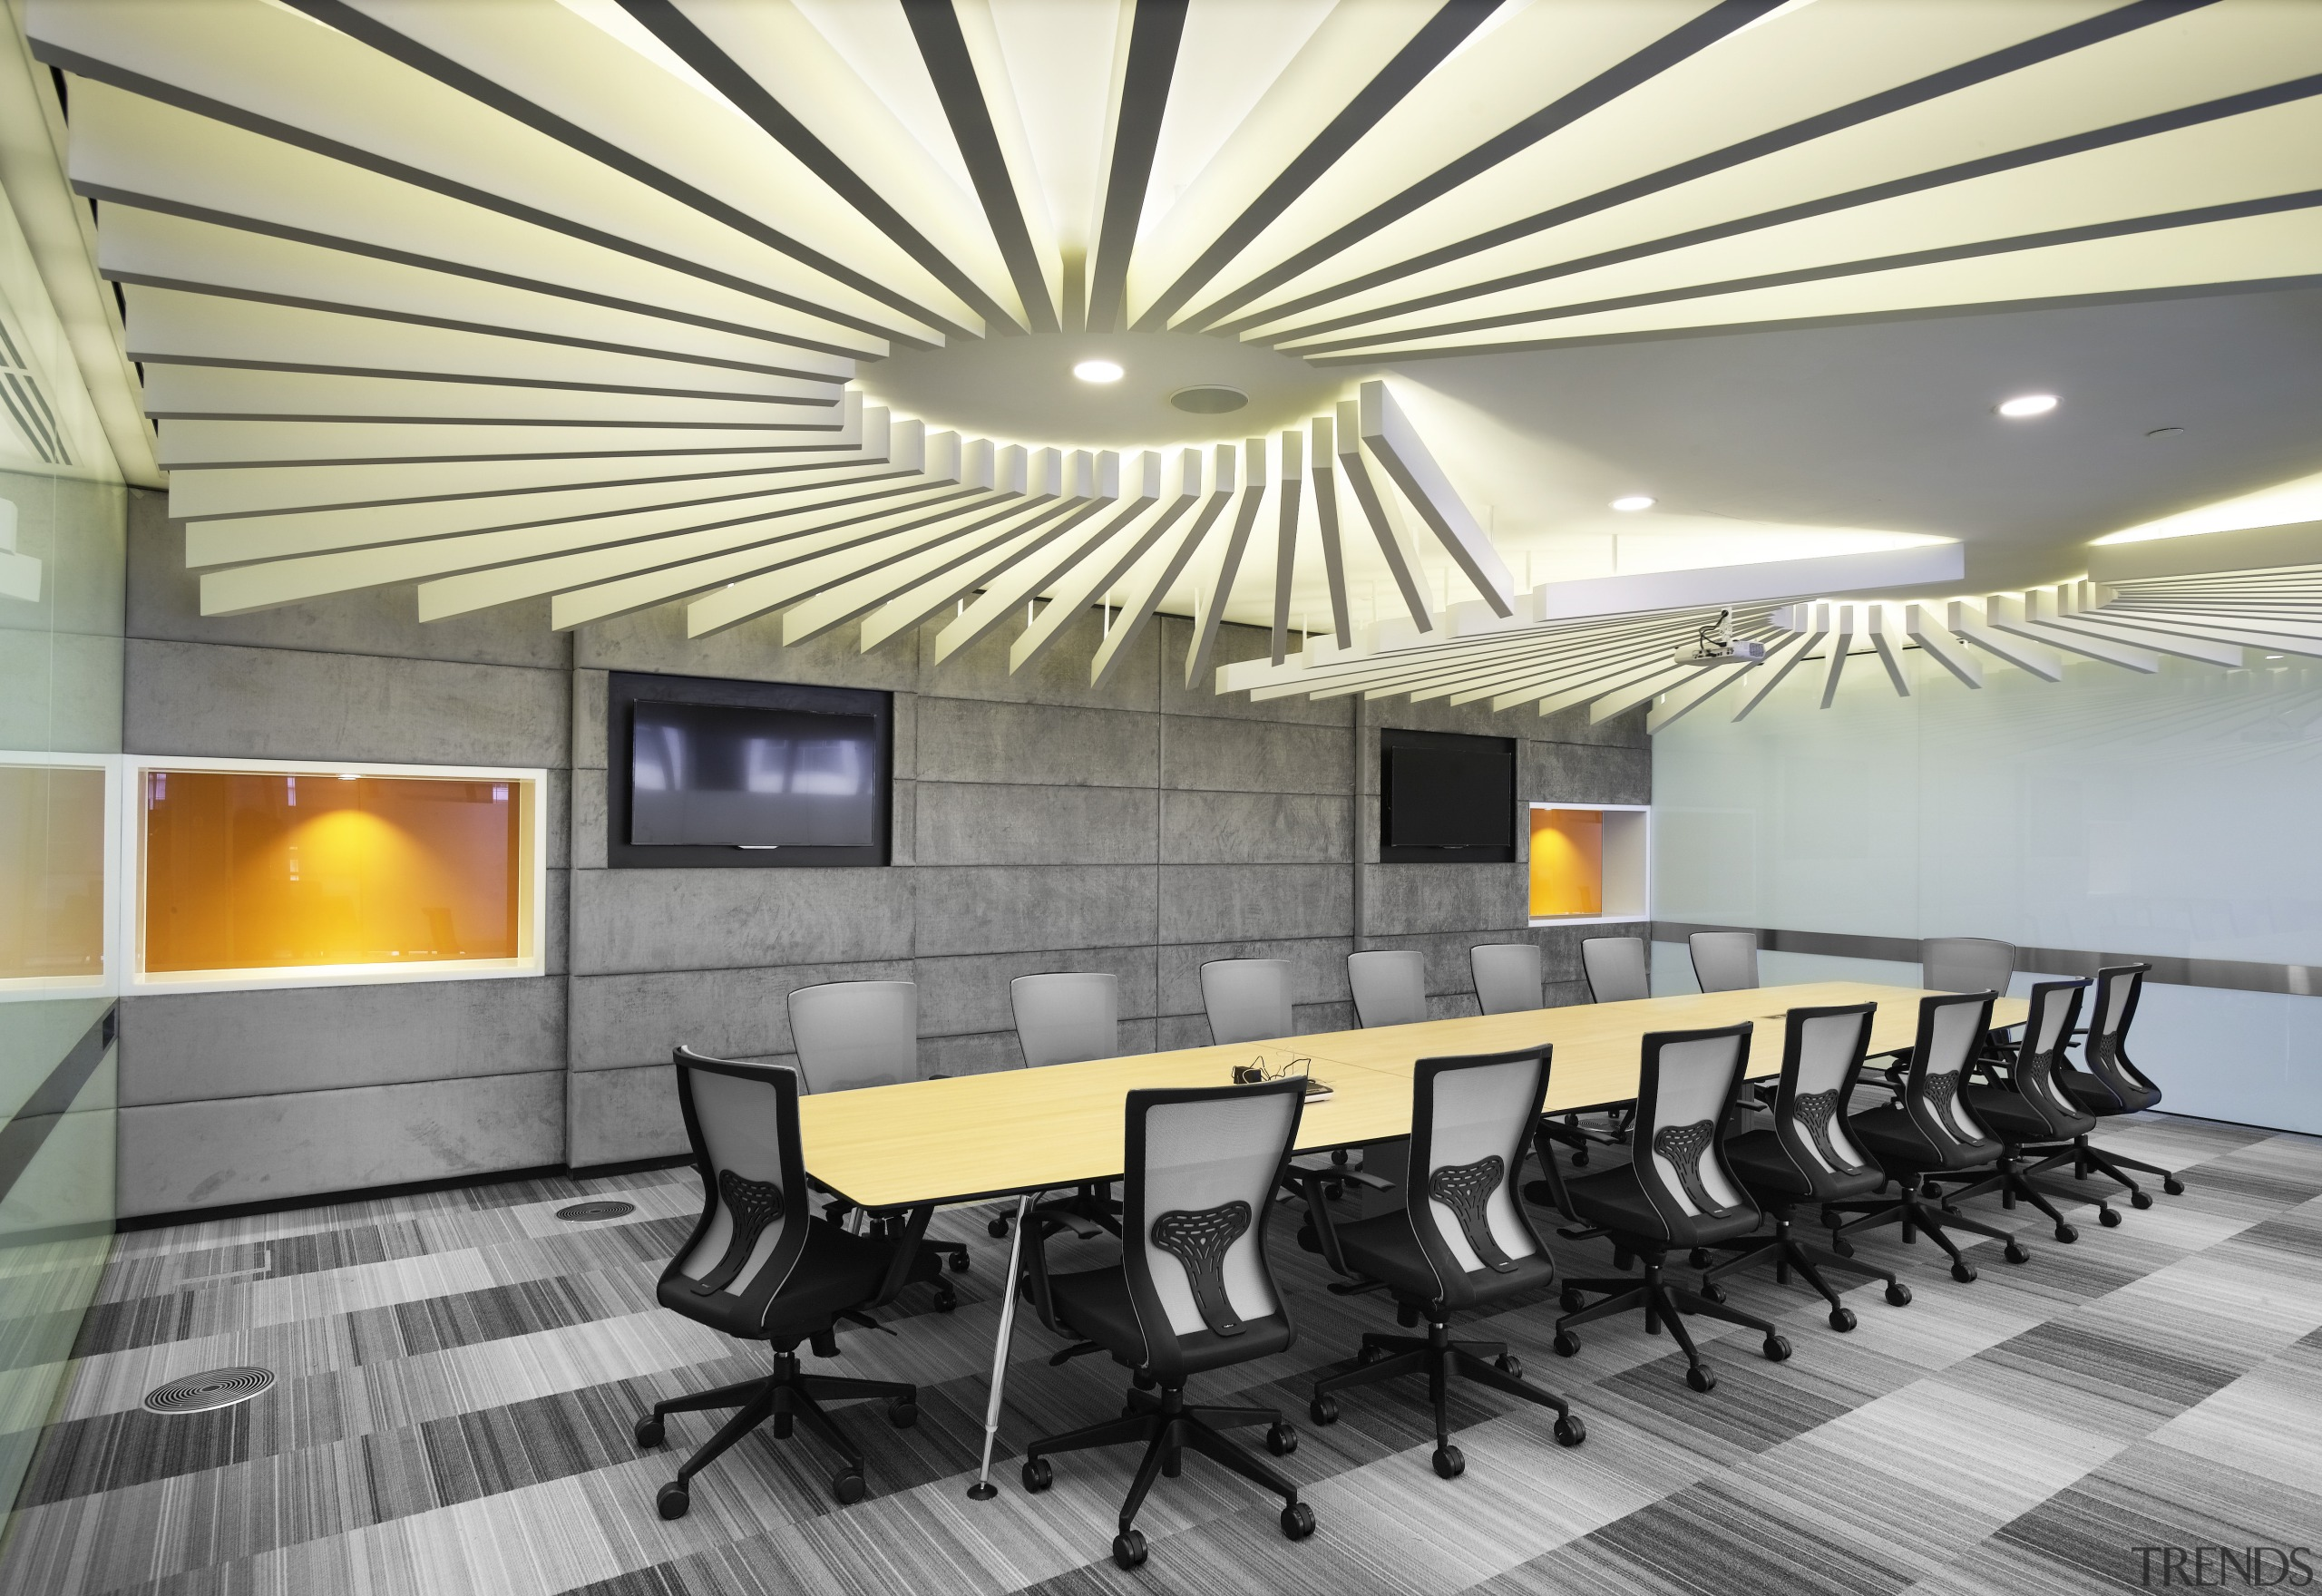 On this fit-out, the contemporary boardrooms swirling feature architecture, ceiling, conference hall, interior design, lobby, table, gray, yellow